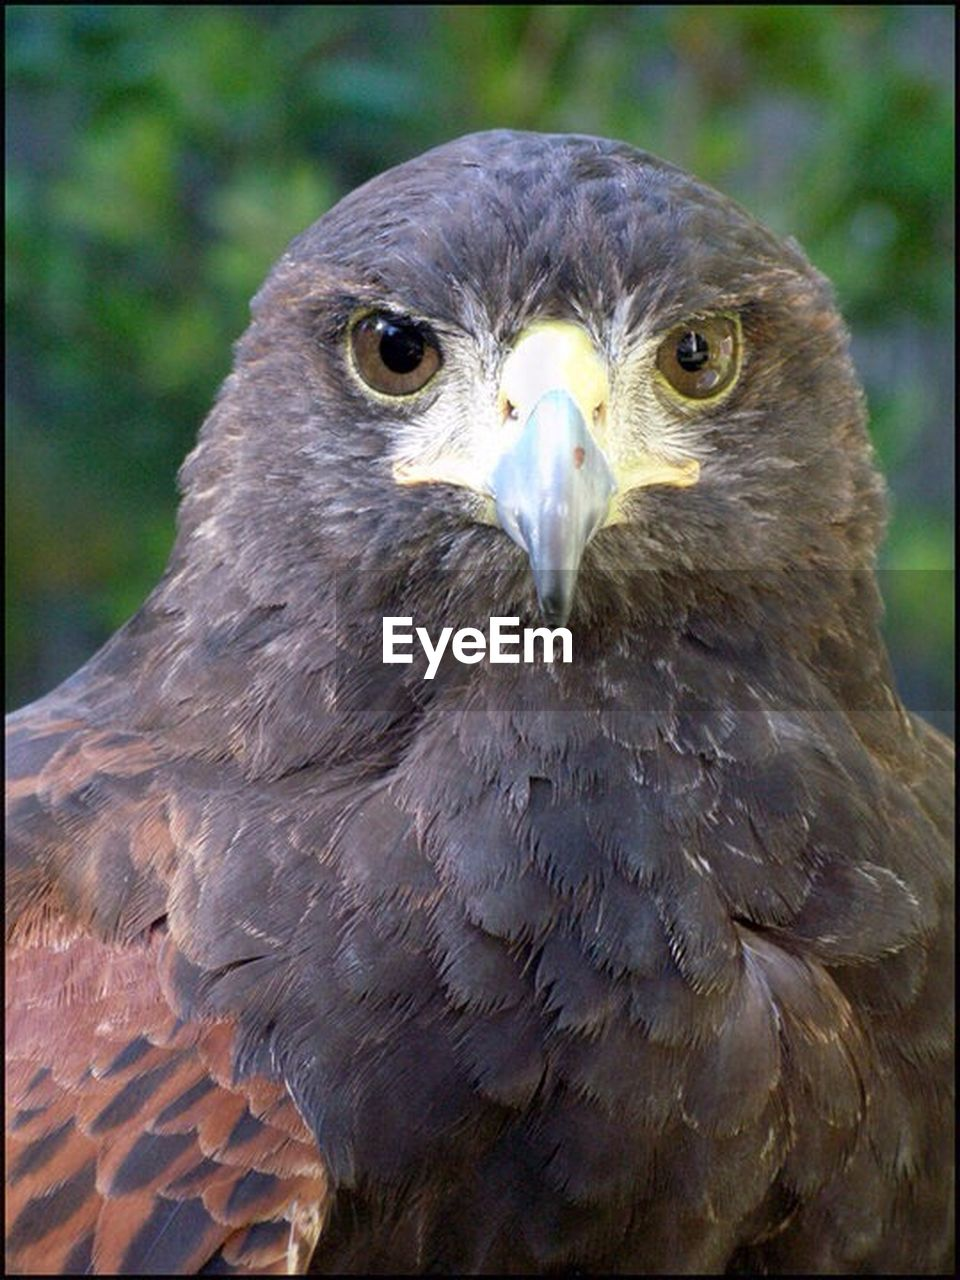 bird of prey, bird, animals in the wild, animal themes, animal wildlife, close-up, looking at camera, focus on foreground, one animal, beak, day, portrait, outdoors, no people, nature